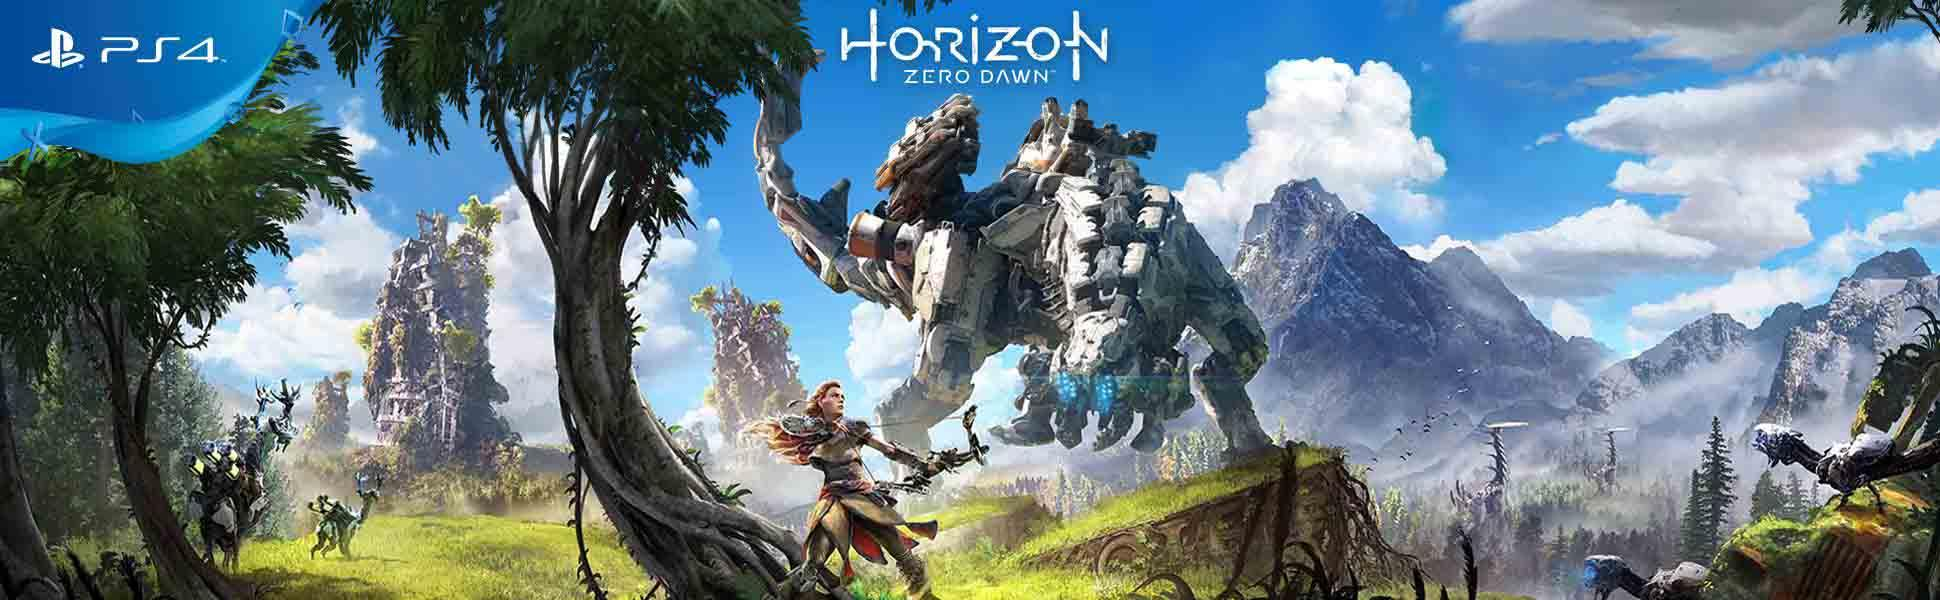 Horizon-Zero-Dawn-RD2